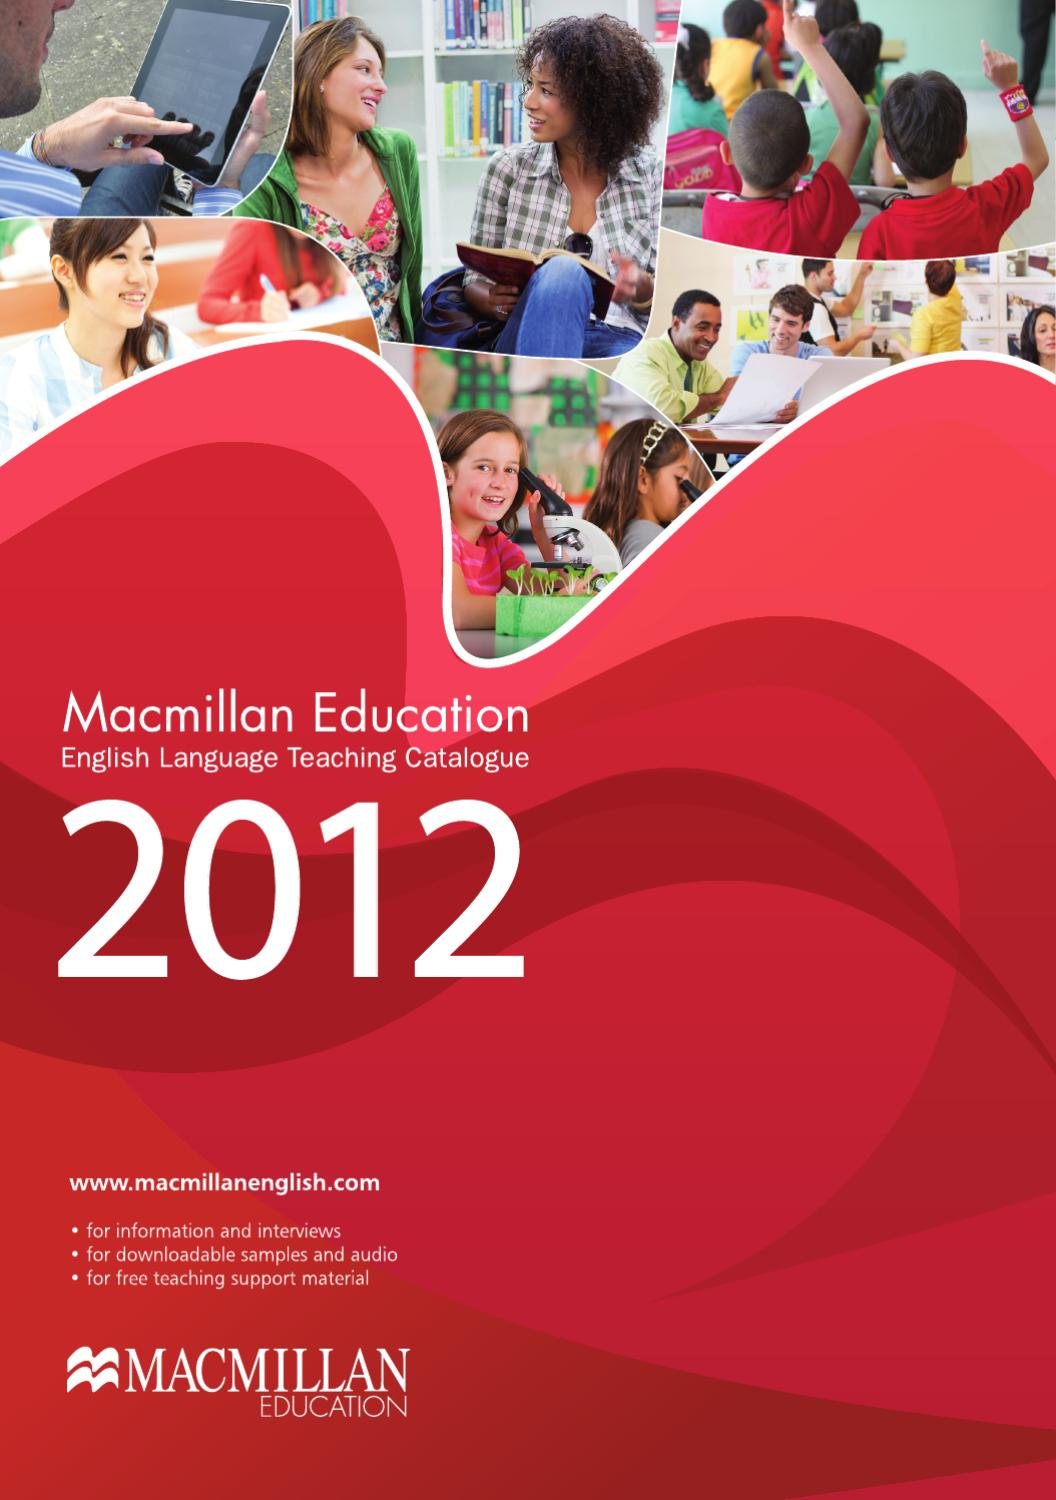 macmillan education 2012 catalogue by macmillan education. Black Bedroom Furniture Sets. Home Design Ideas